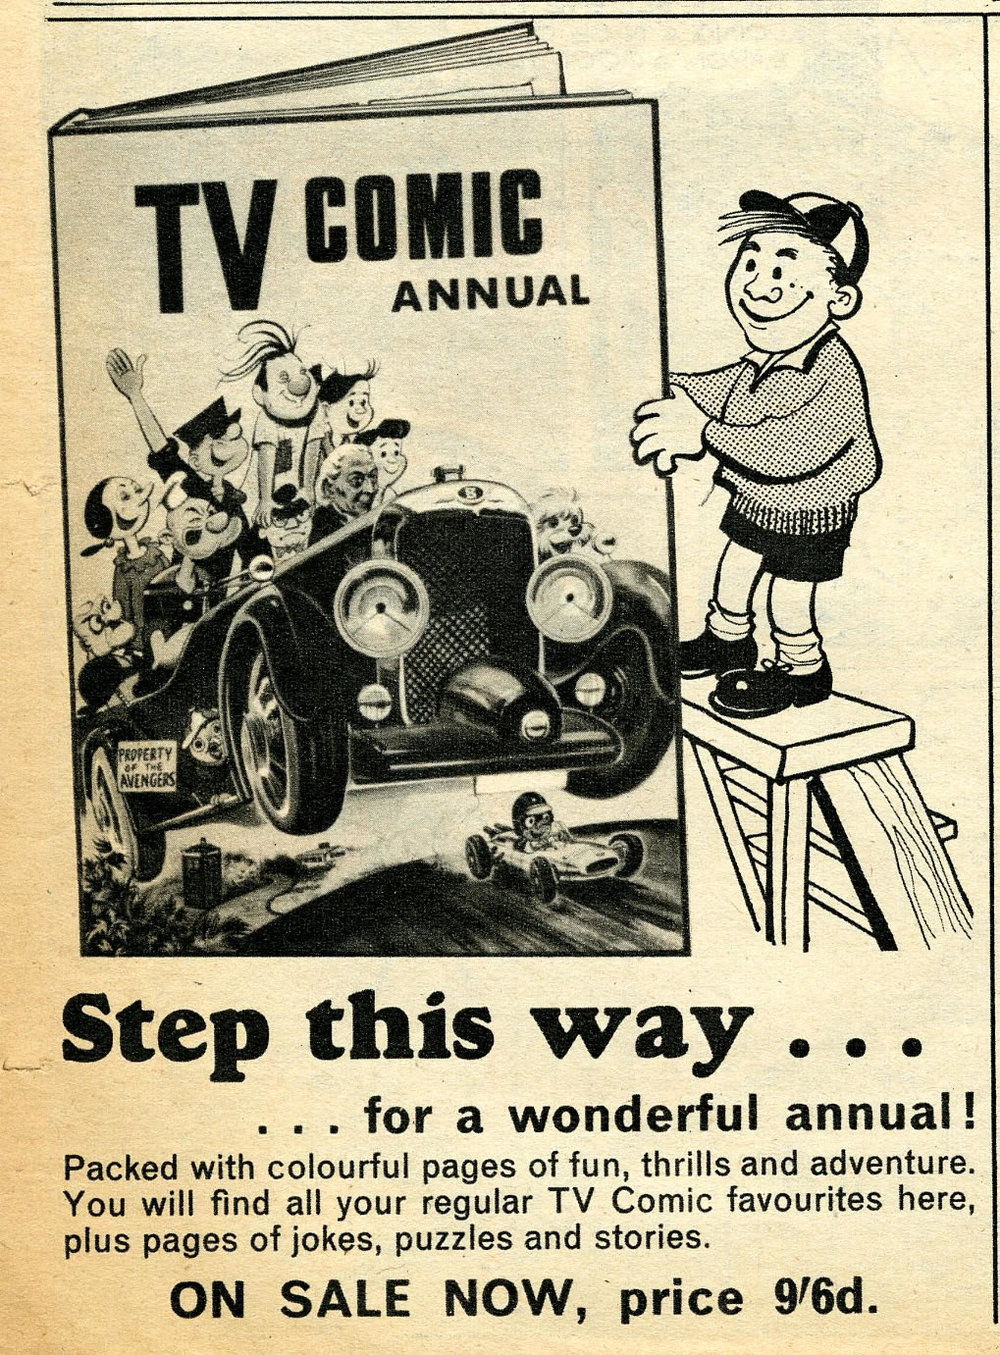 Ad for the TV Comic Annual 1967 in TV Comic, no. 770, 17 September 1966